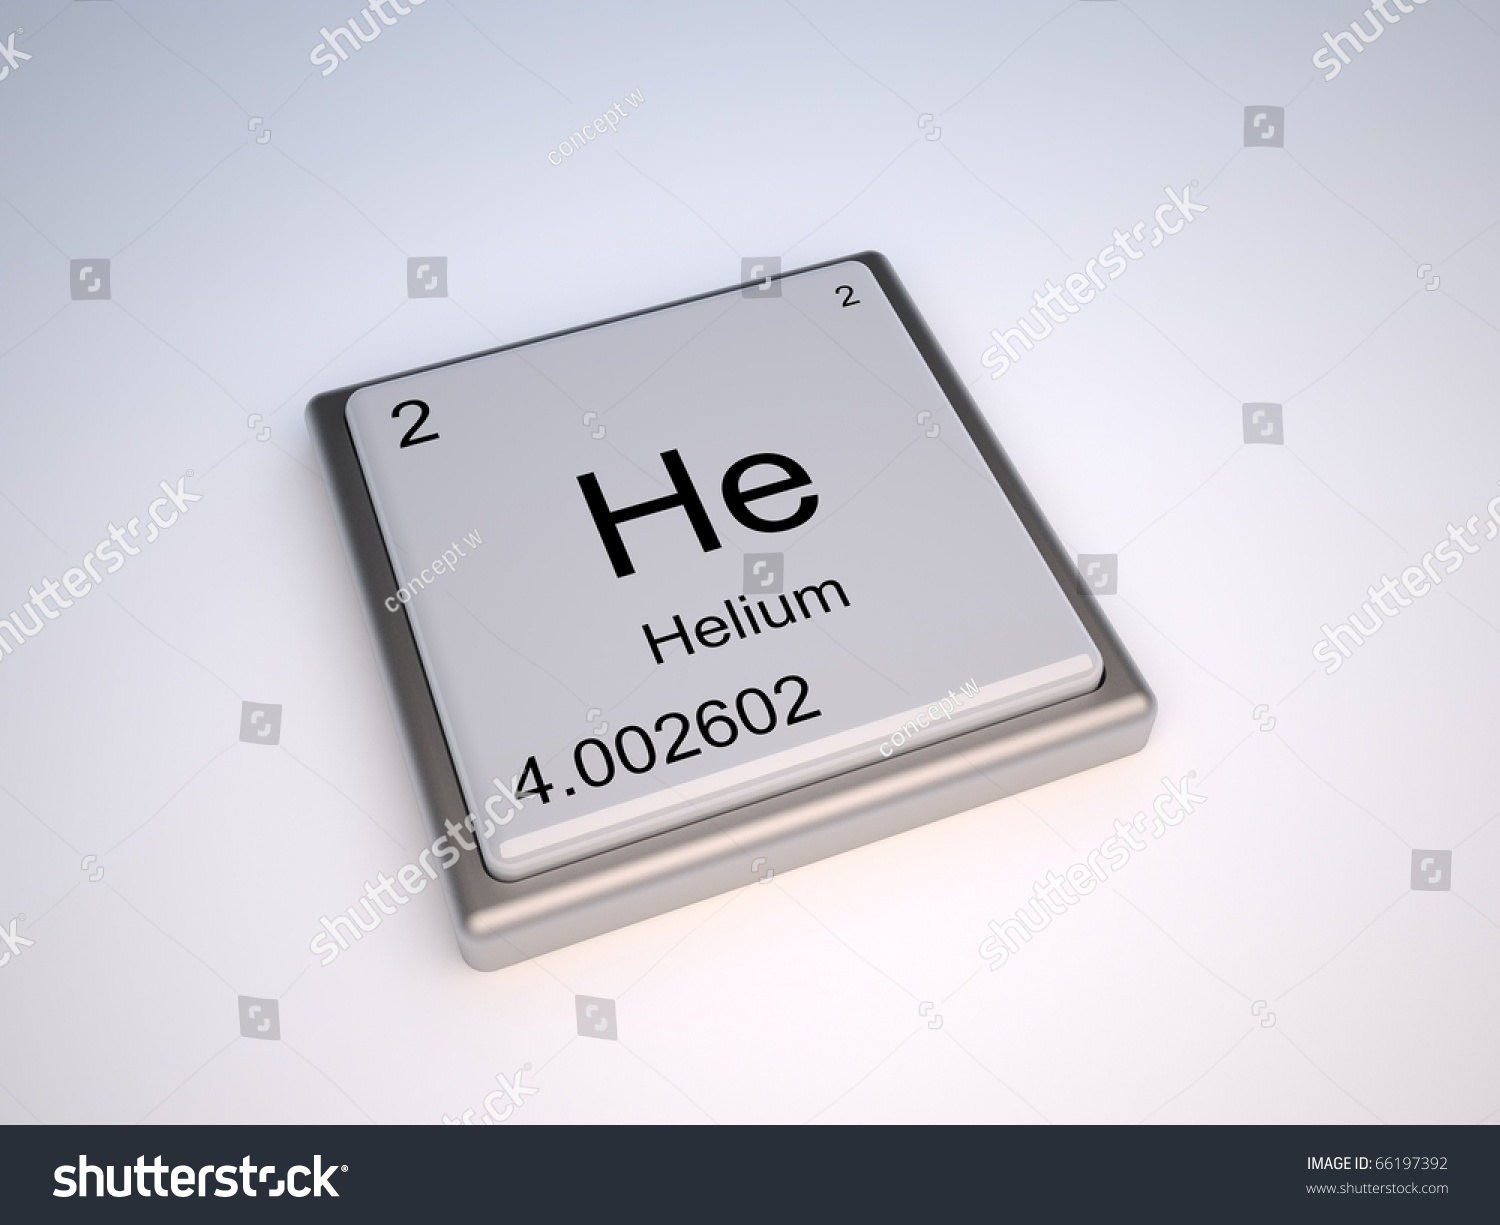 Helium chemical element symbol he stock illustration 66197392 helium chemical element with symbol he buycottarizona